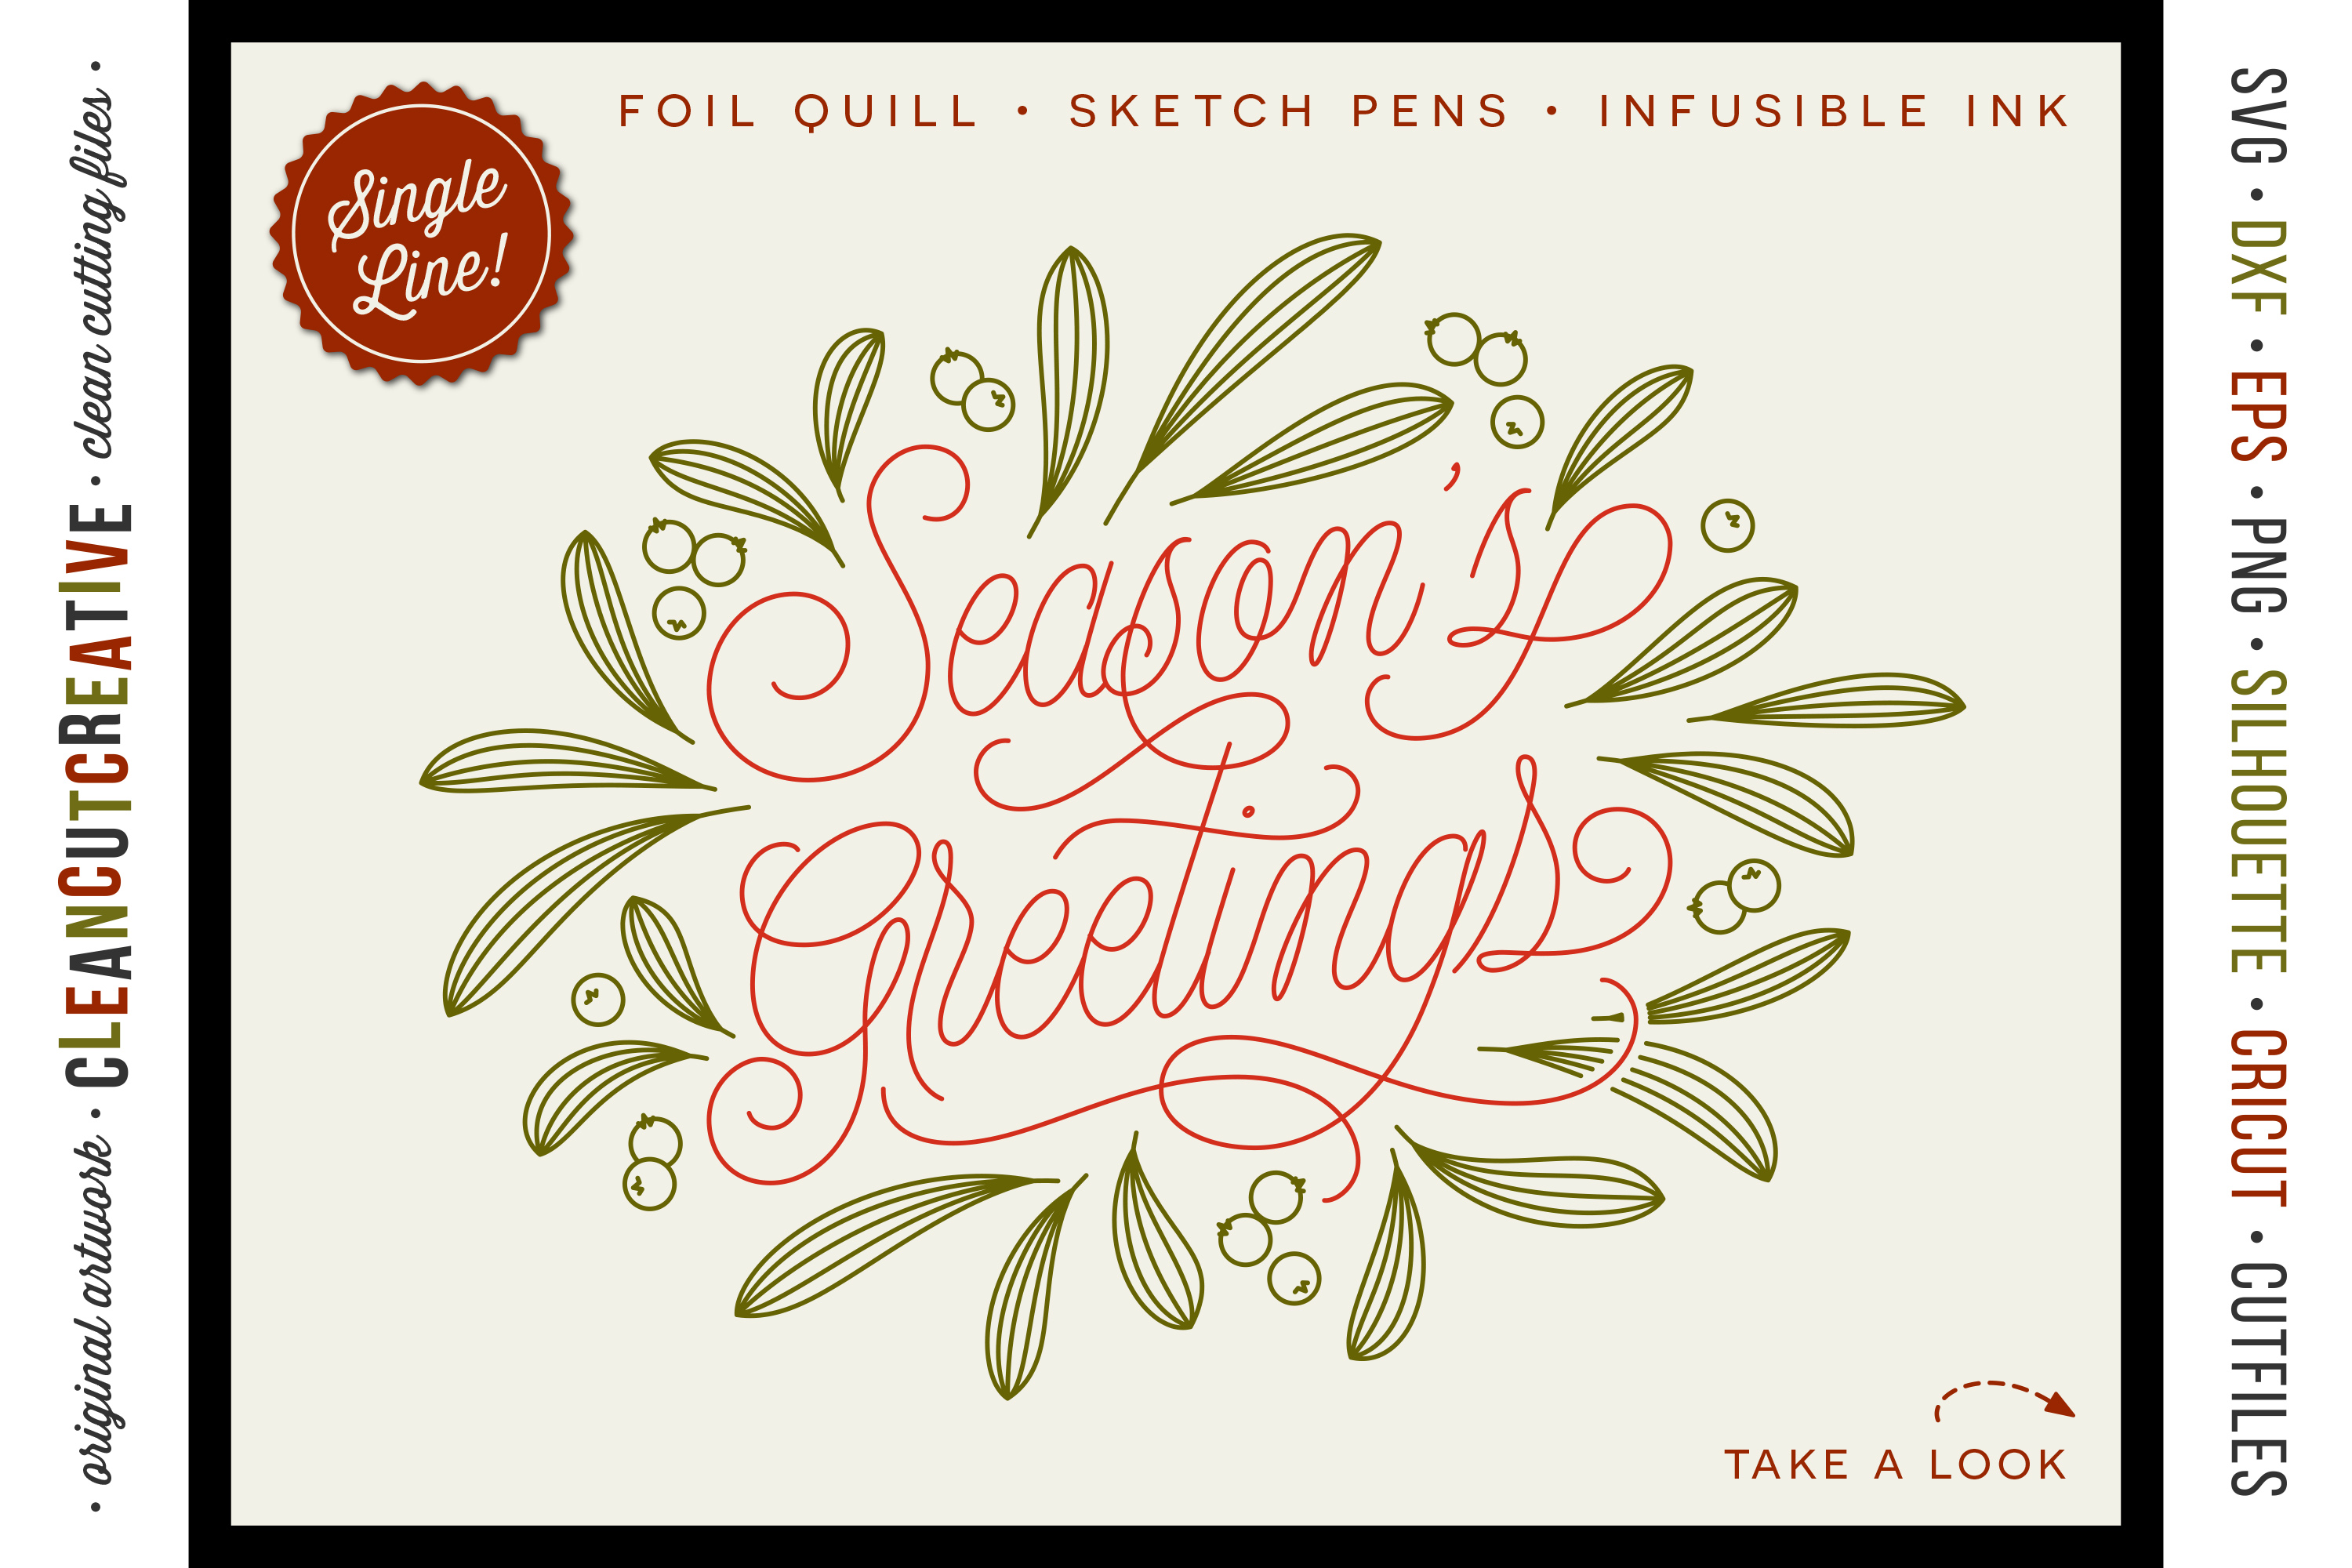 Foil Quill Season's Greetings single line Christmas file SVG example image 1